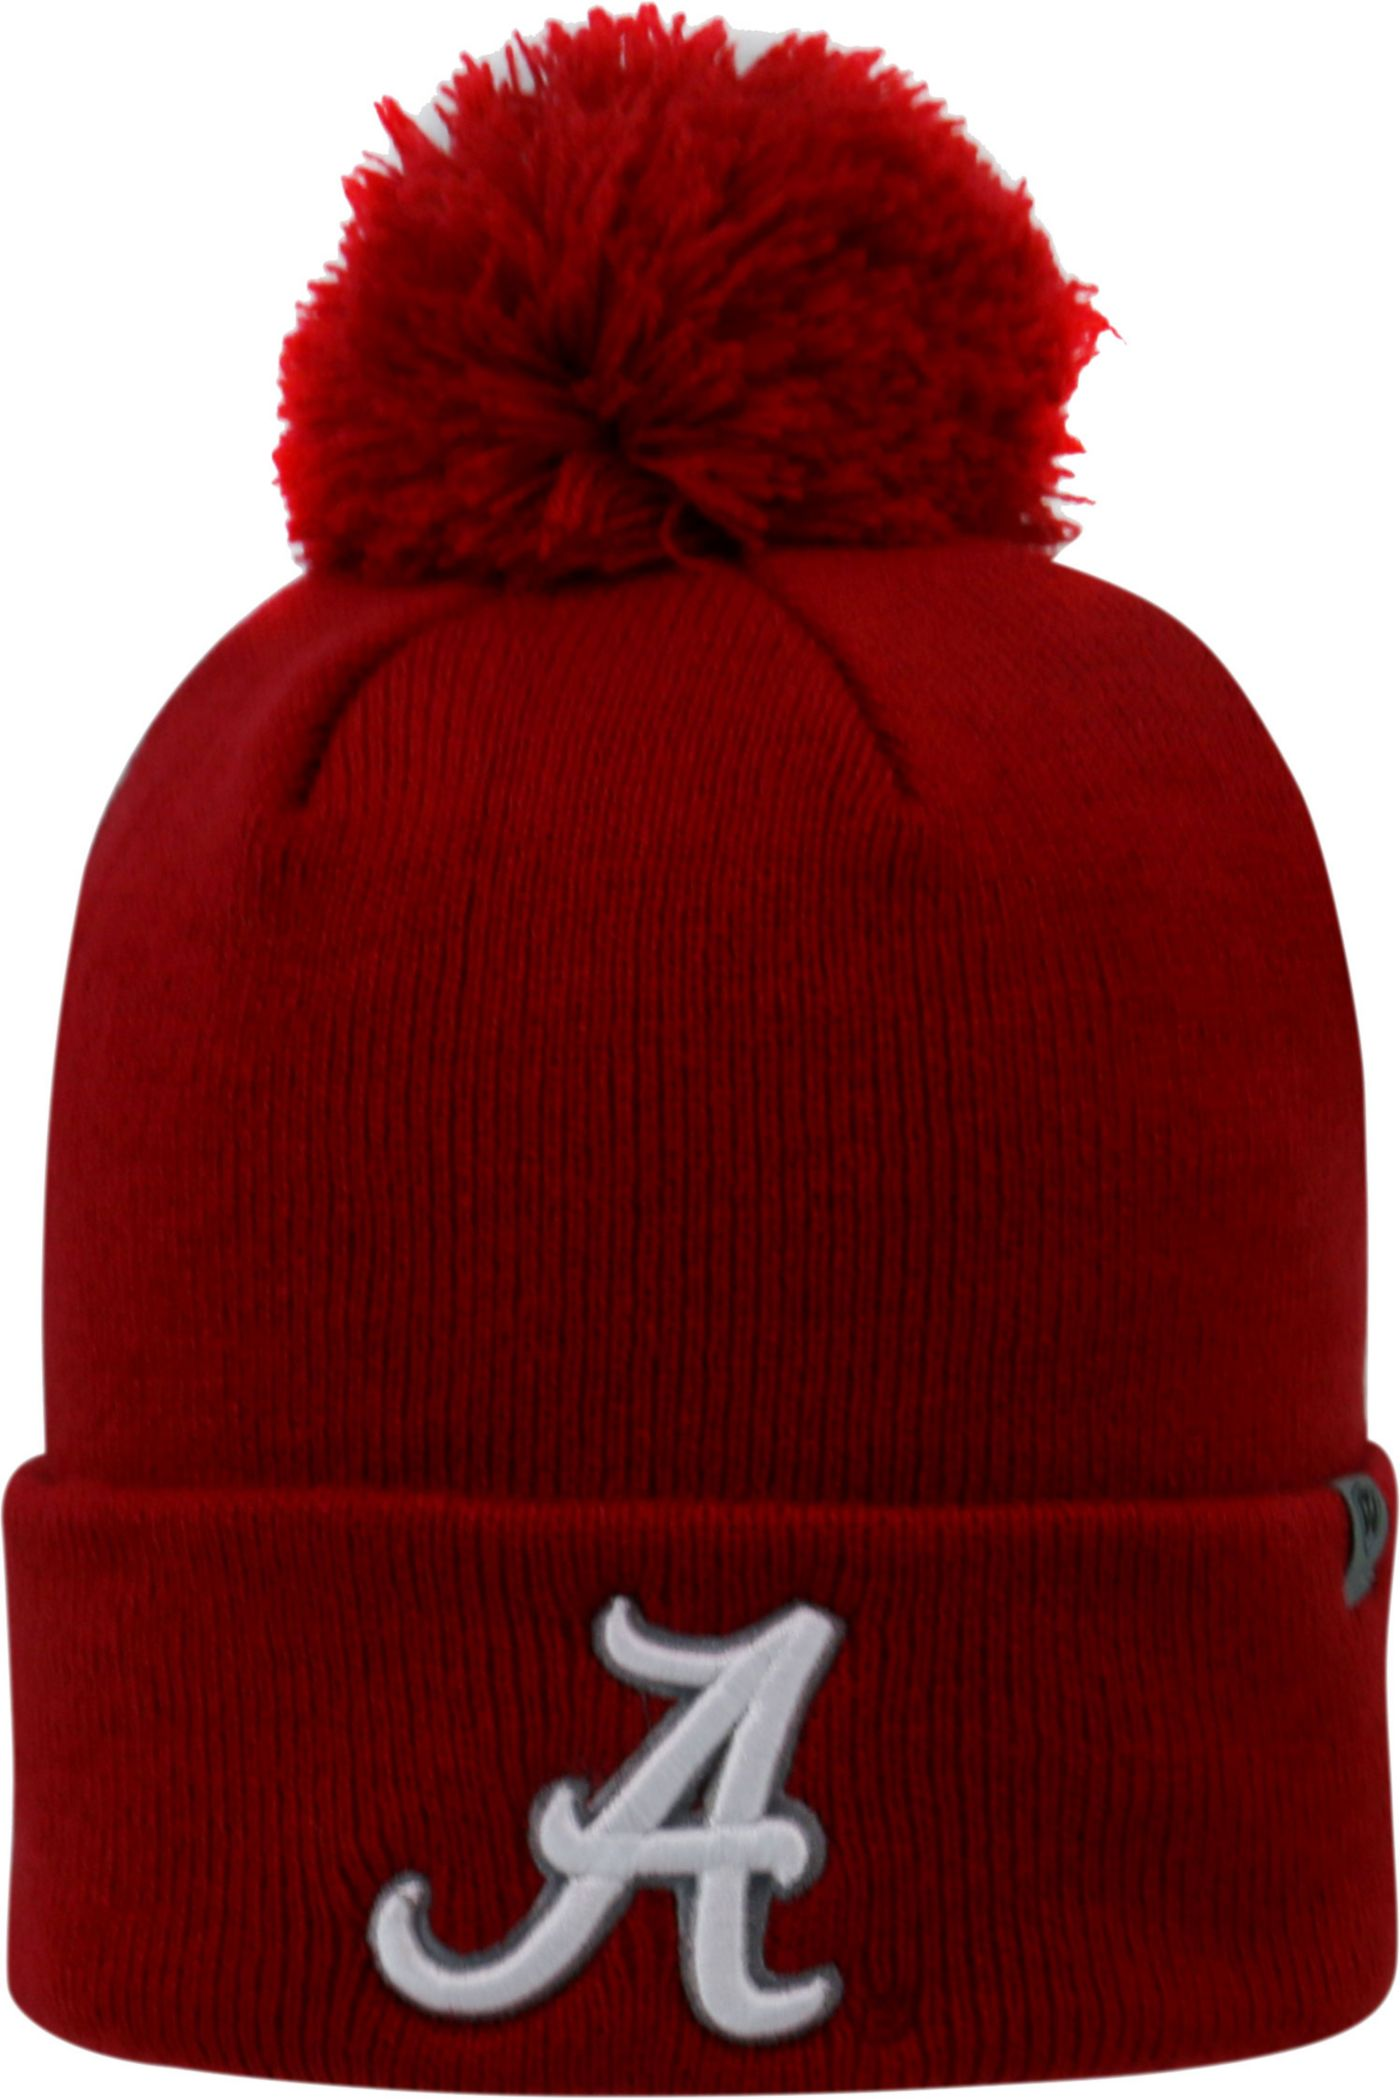 Top of the World Men's Alabama Crimson Tide Crimson Pom Knit Beanie